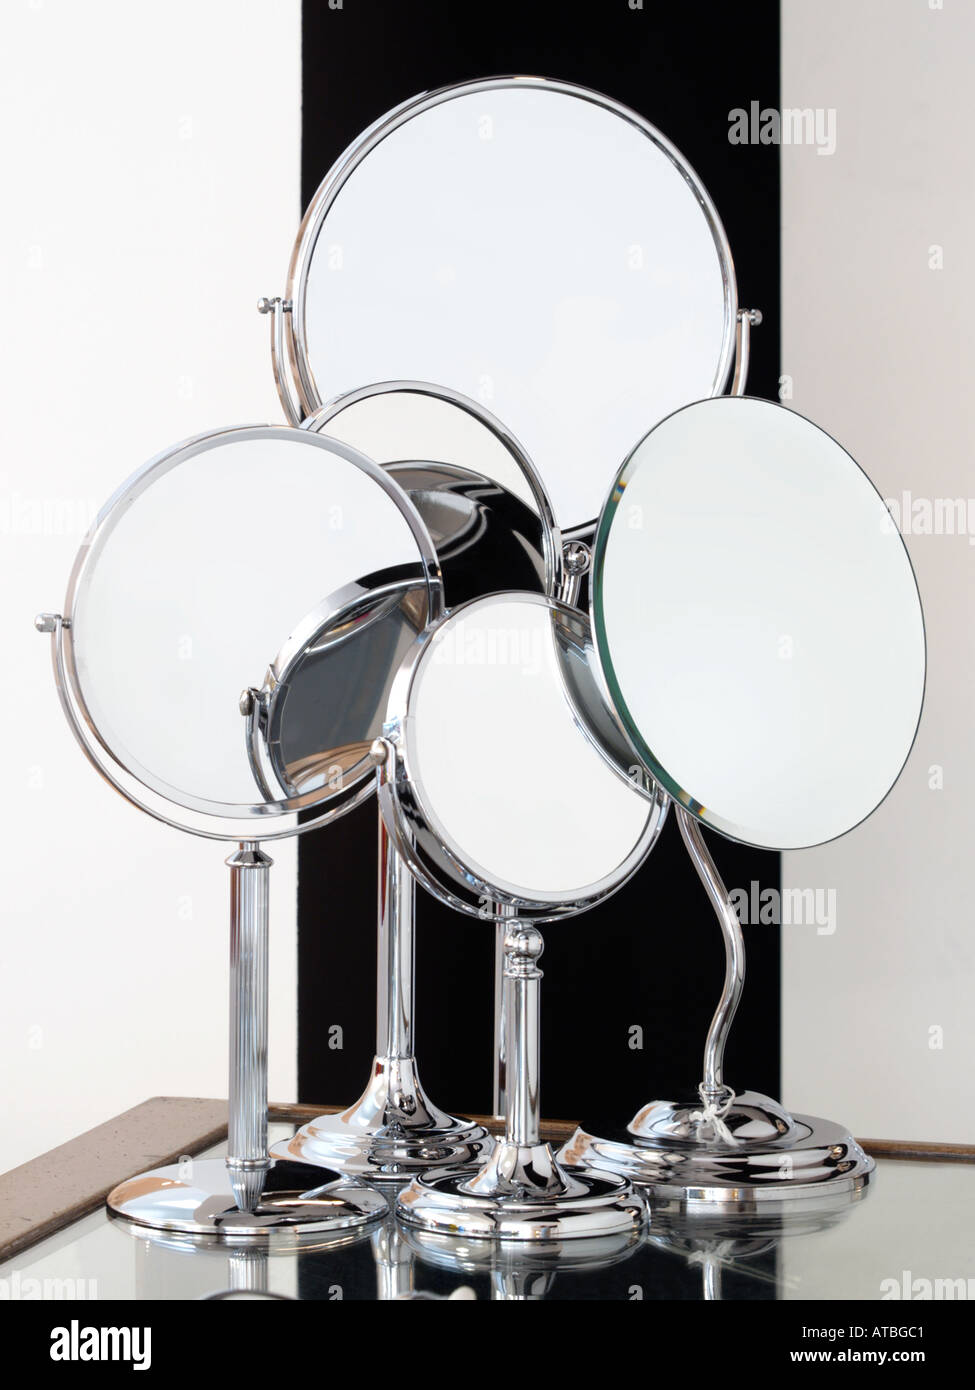 Classically styled round shaving mirrors - Stock Image